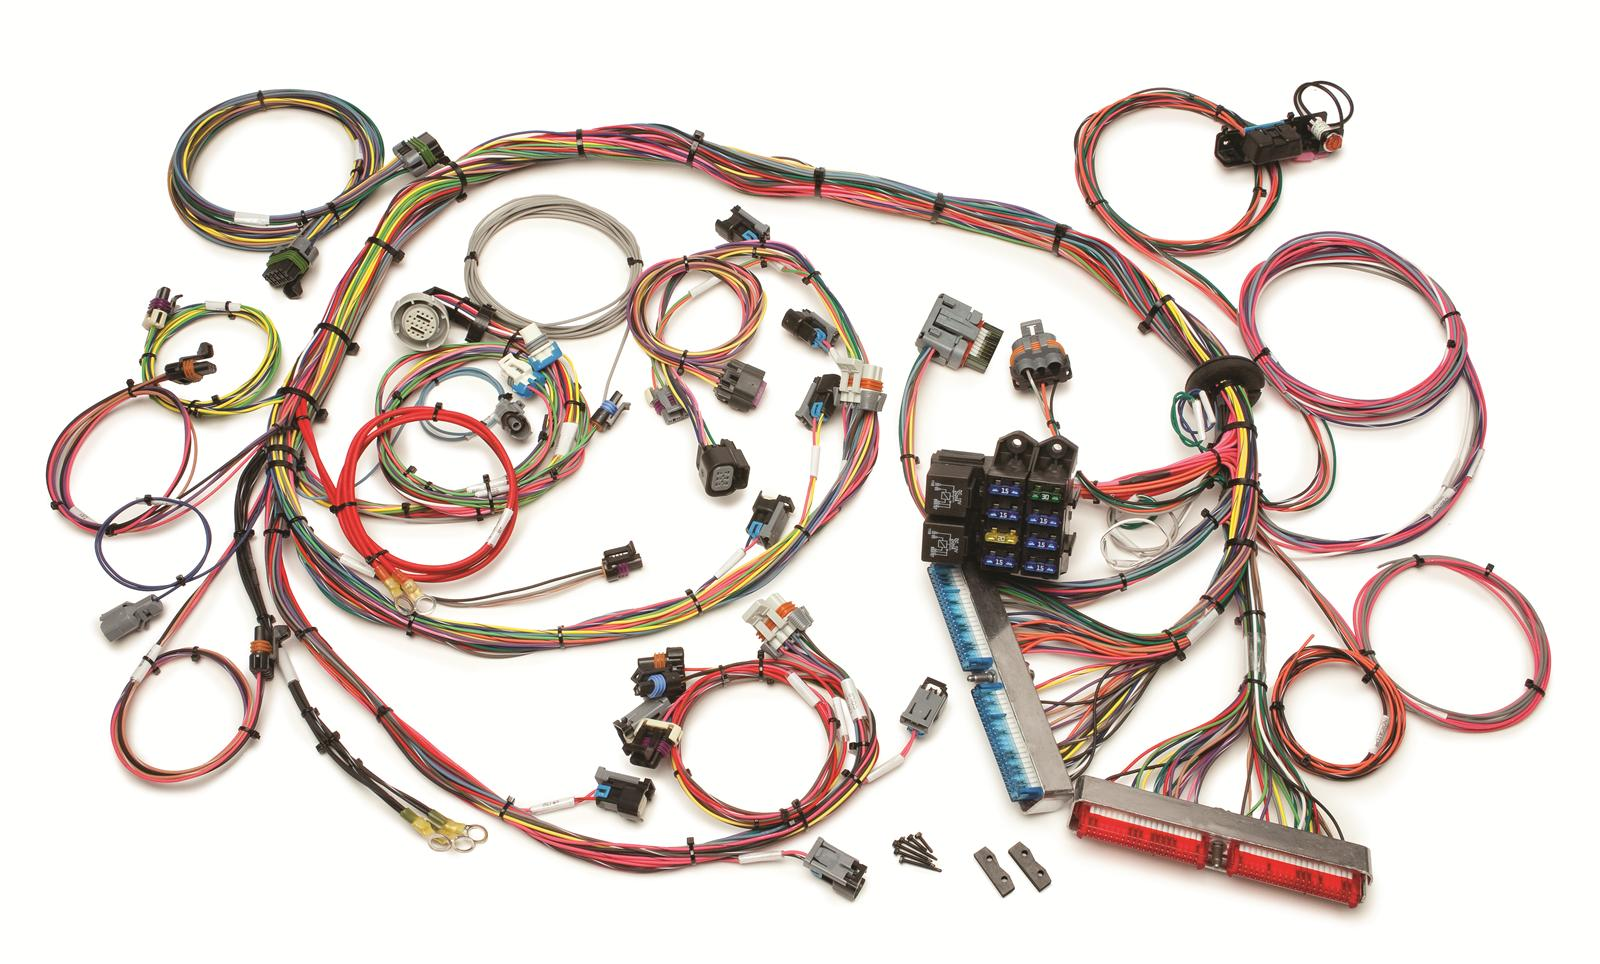 hight resolution of painless engine wiring harness engine swap front fuse gm ls wiring harness project rowdy ep014 ls1 wiring harness diagram